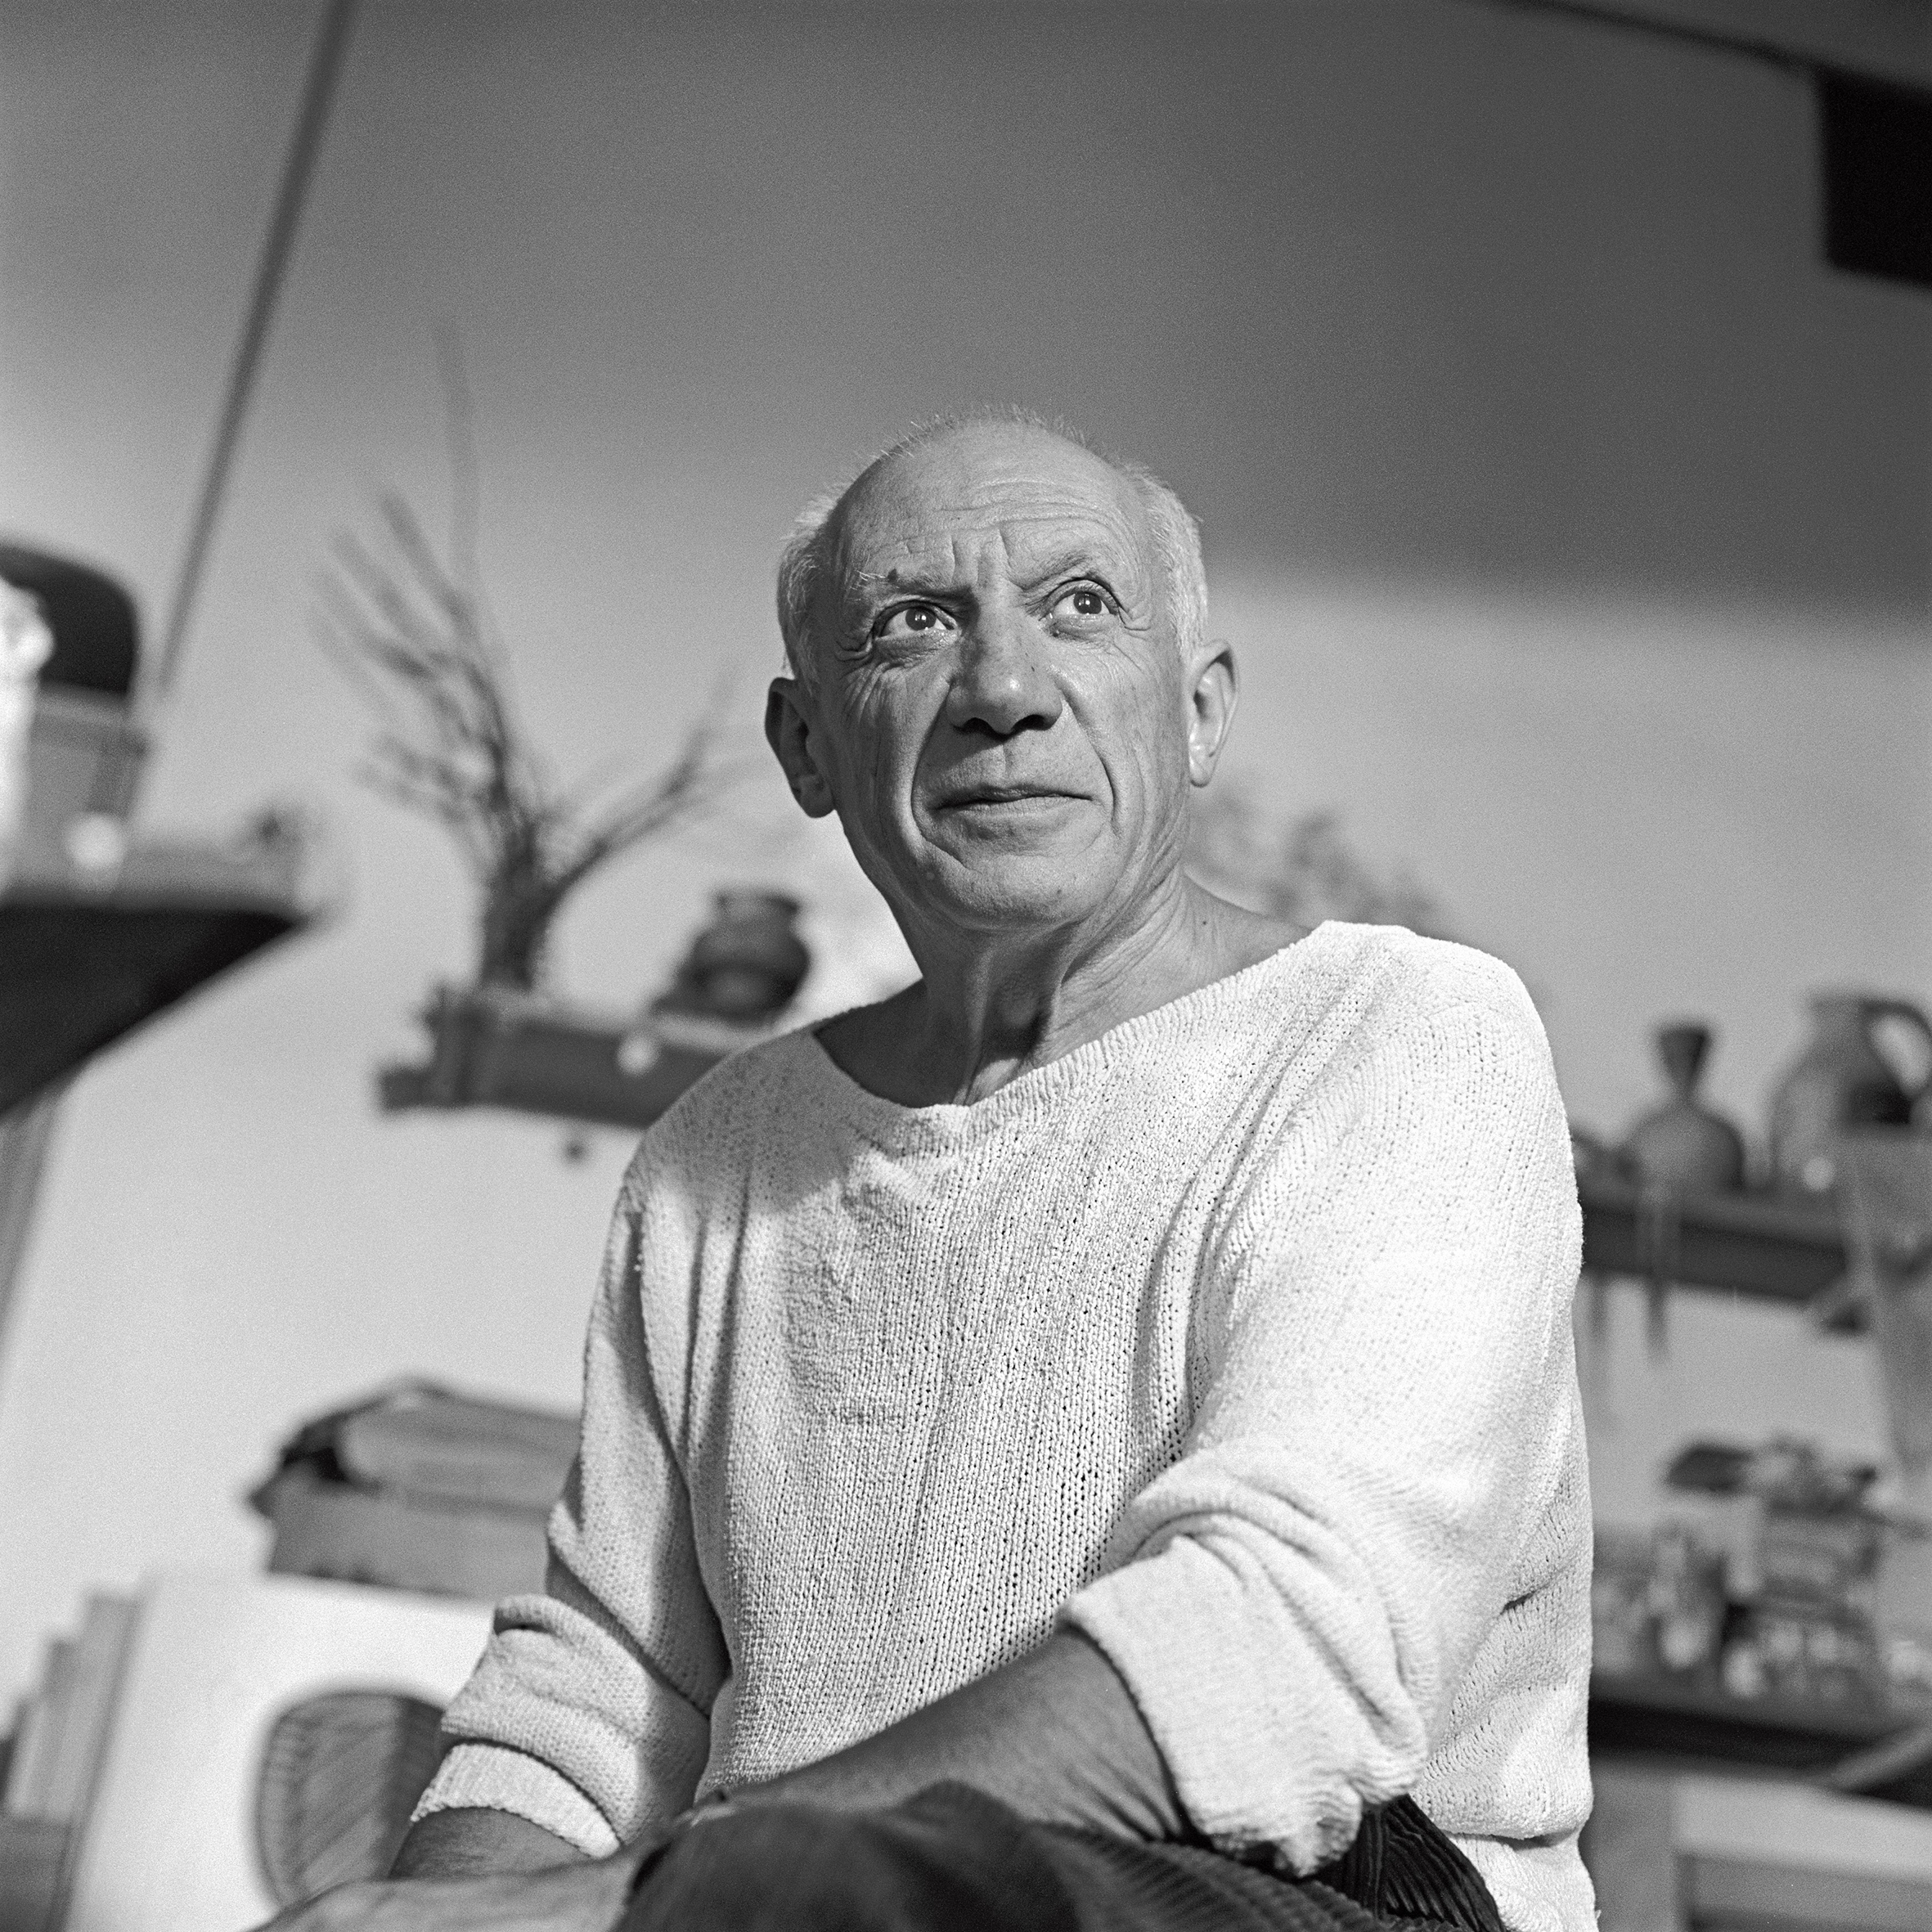 00_Edward_Quinn_Picasso_dans_son_atelier_Le_Fournas_1953_Photo_Edward_Quinn(c)edwardquinn.com